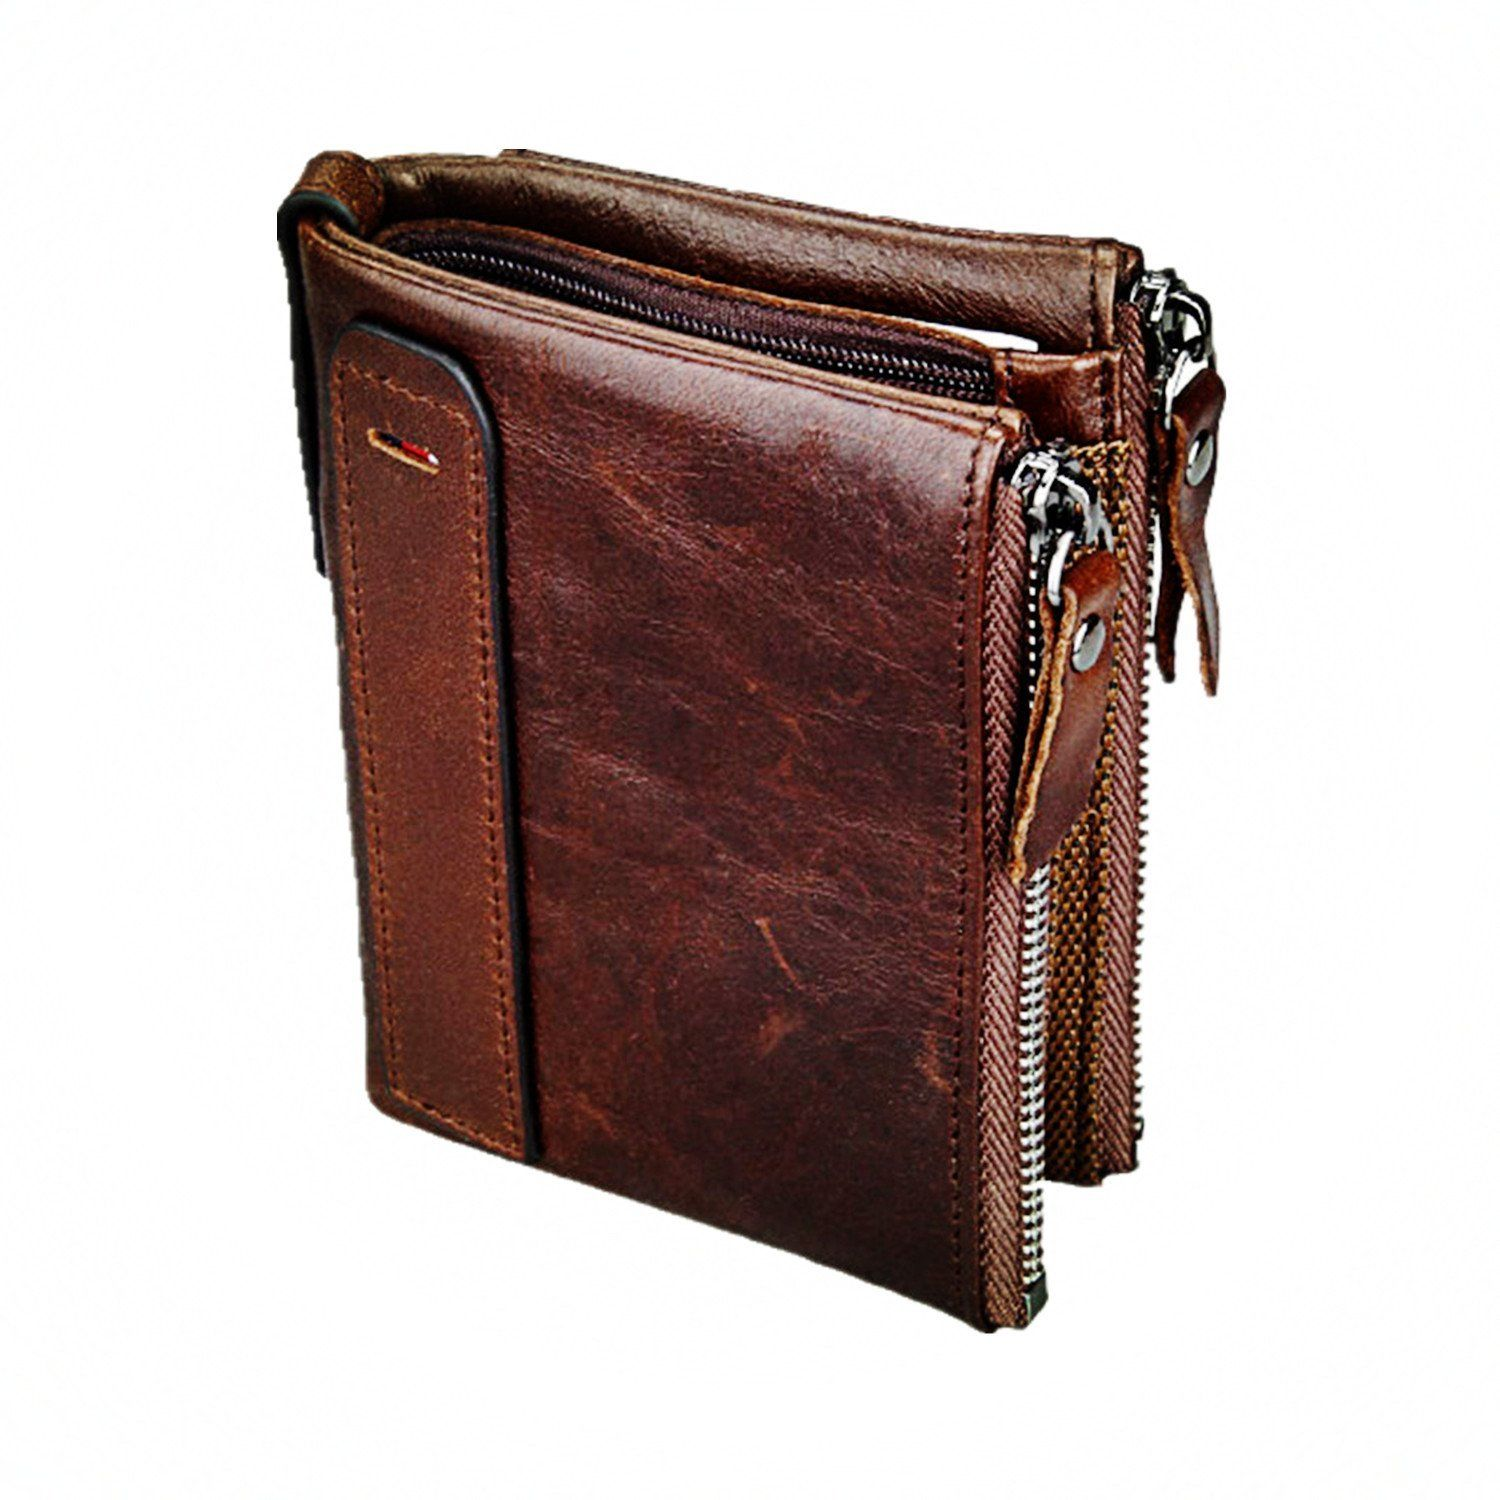 8ad0e98fcf30 Men's Leather Wallet Genuine Leather Cowhide Zip Wallet Vintage Bifold With  Double Minimalist Vintage Wallets Pockets